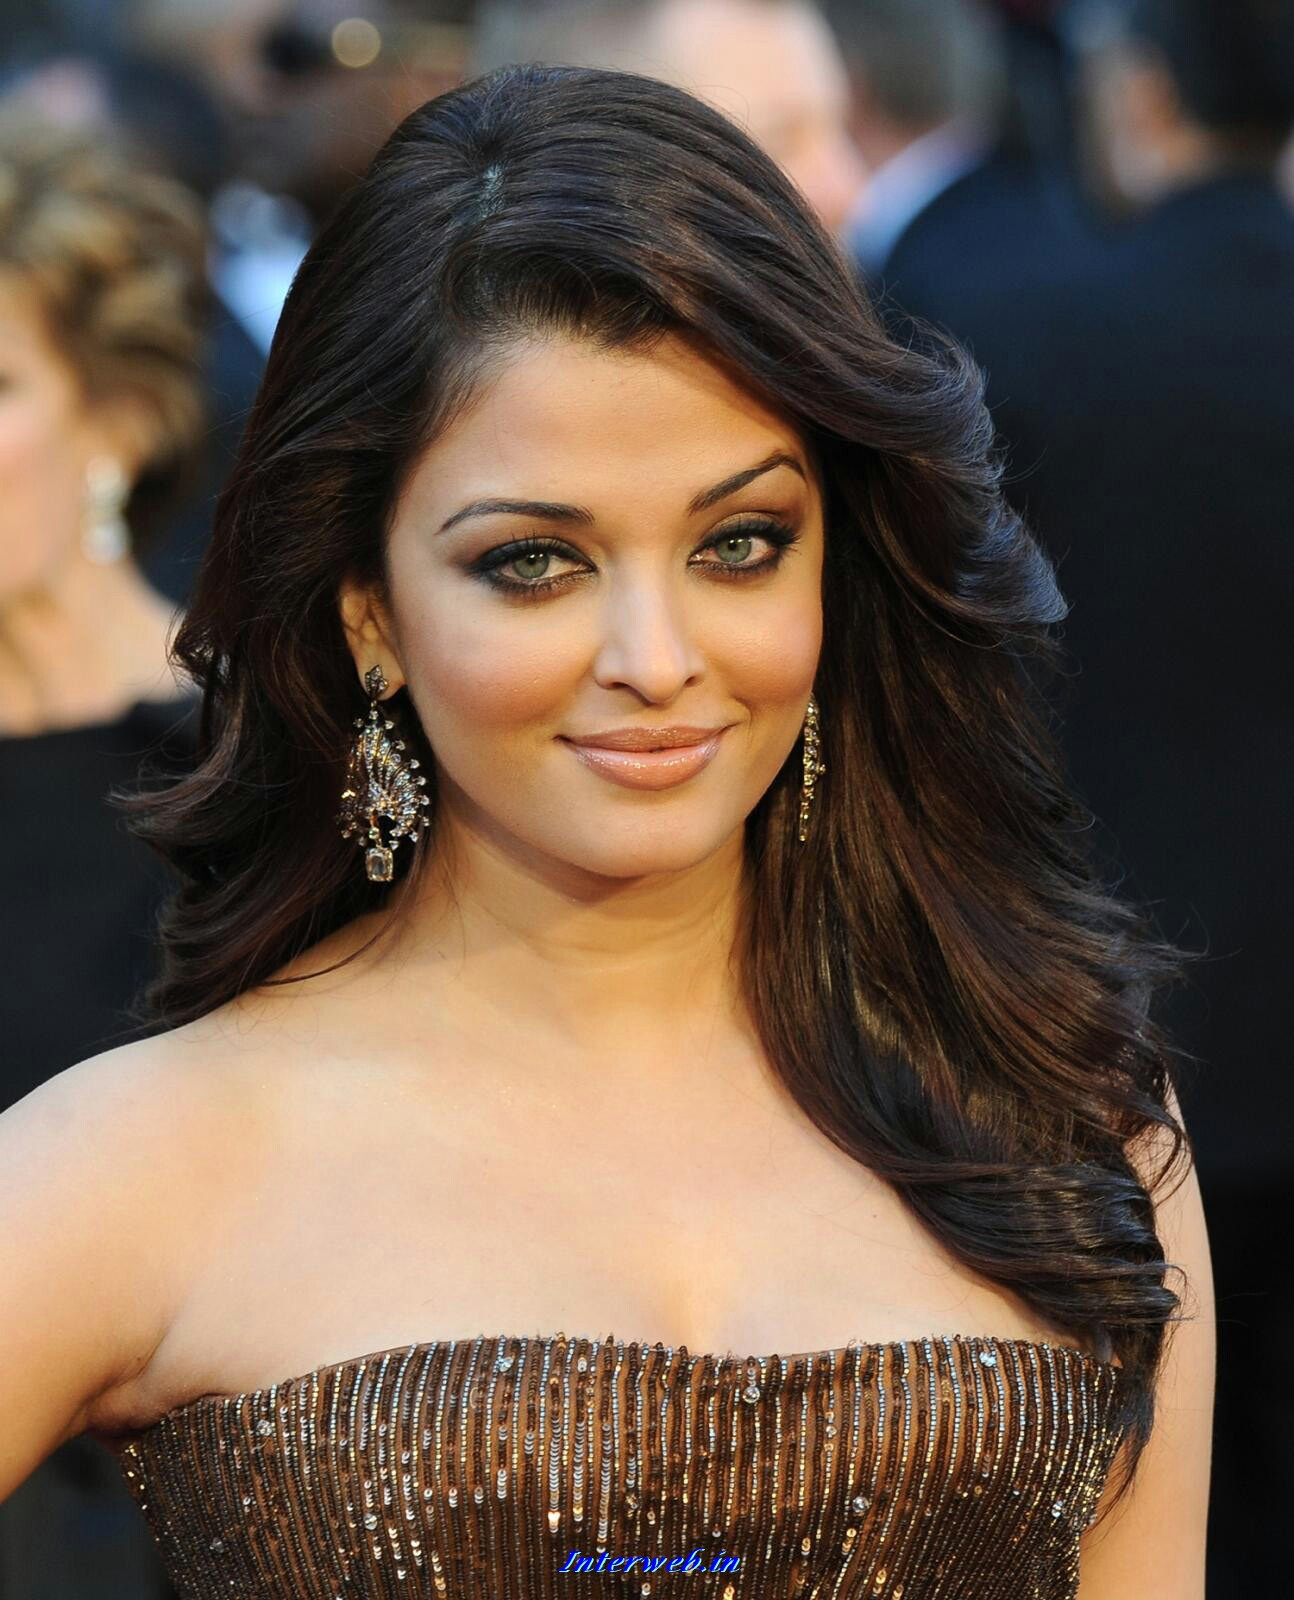 Indian Film Actress Profiles Biodata Aishwarya Rai -5831